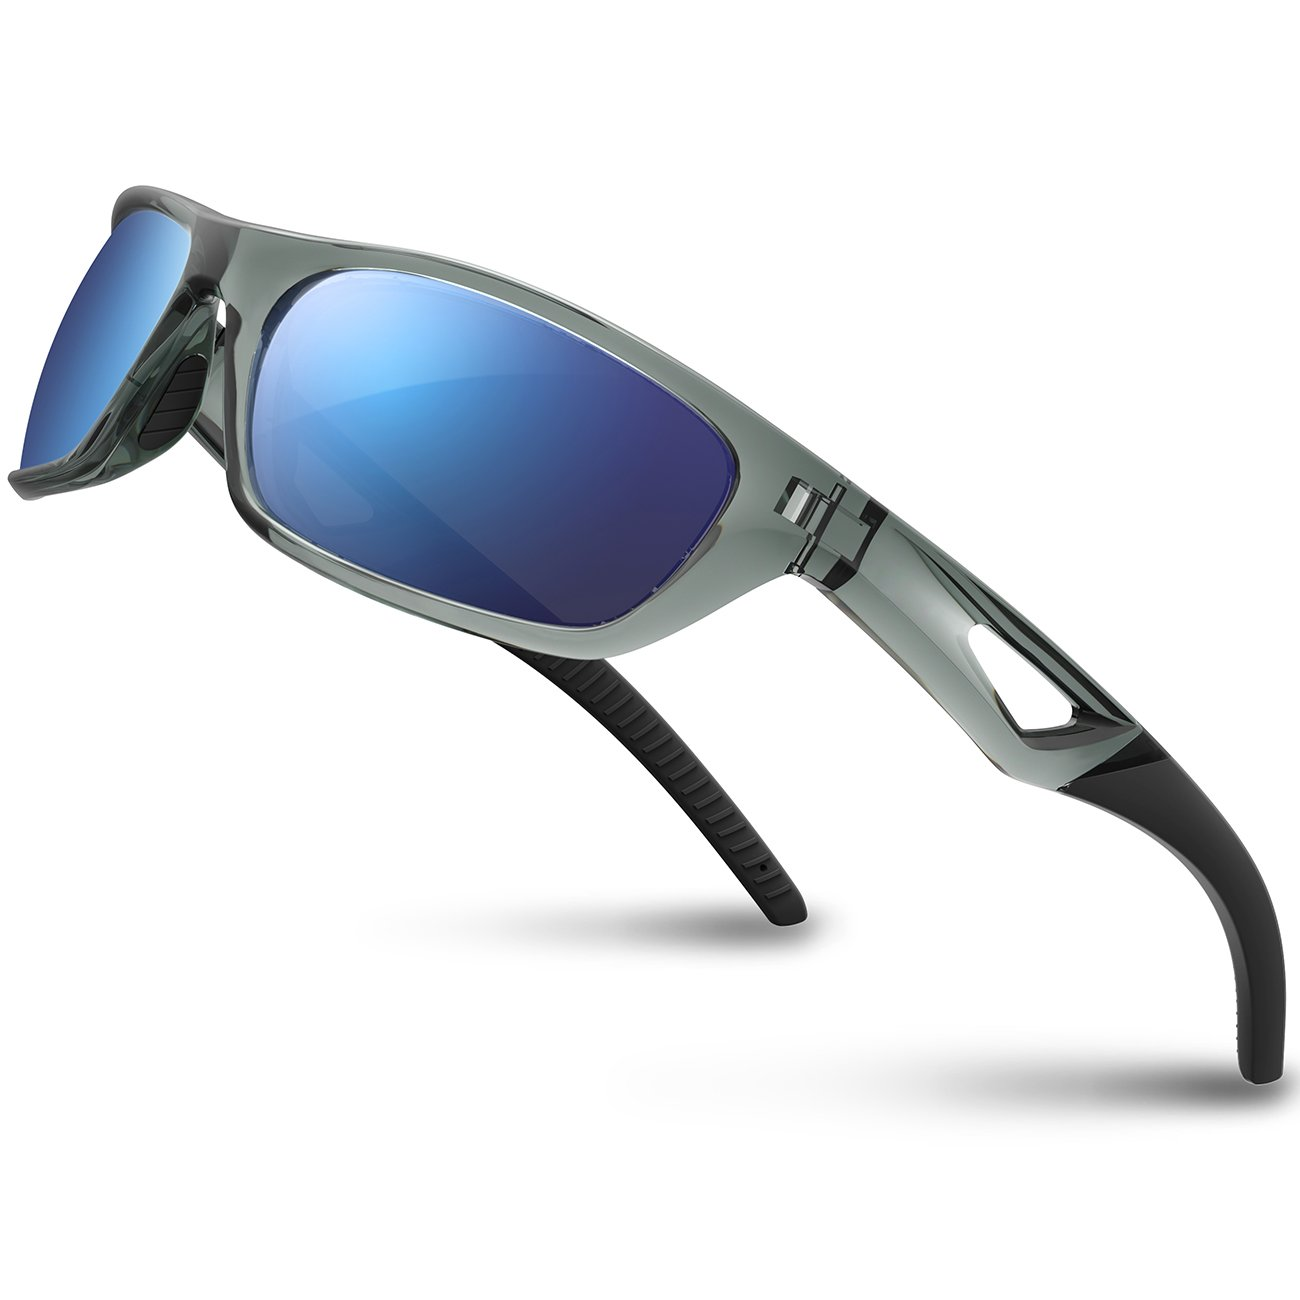 RIVBOS Polarized Sports Sunglasses Driving Glasses Shades for Men Women Rb831(Transparent Grey Ice Blue Lens)